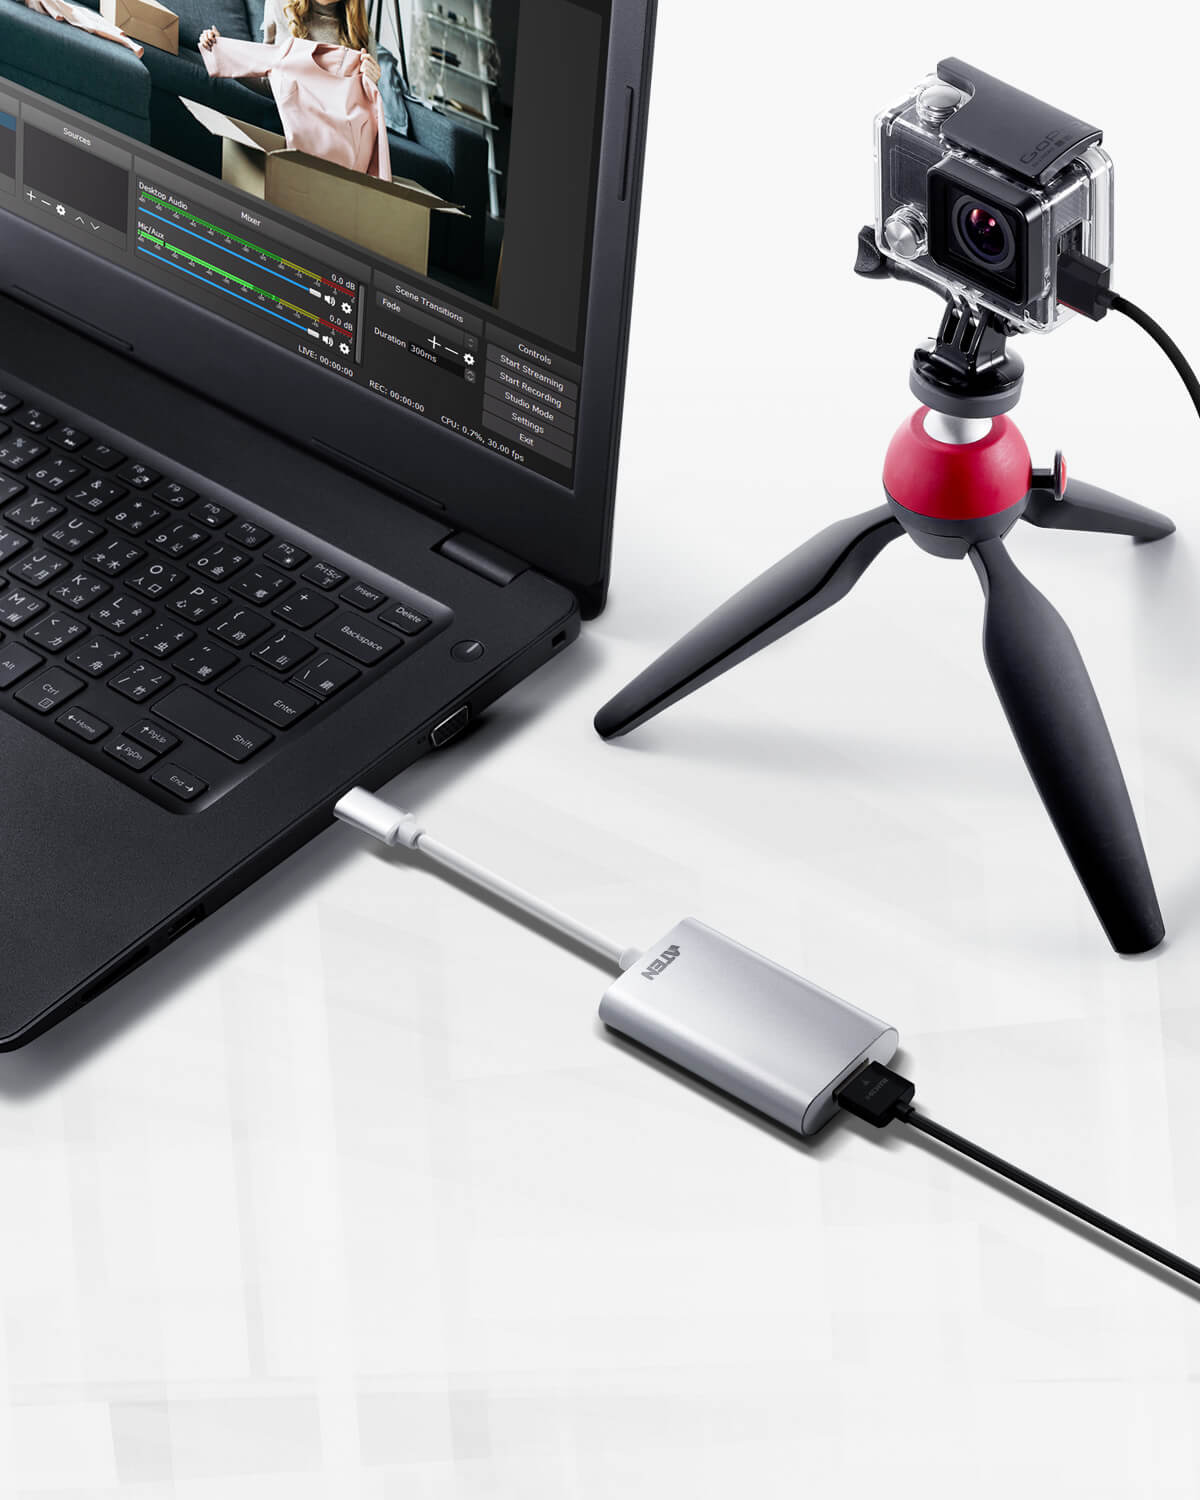 CAMLIVE™ (HDMI to USB-C UVC Video Capture)-4